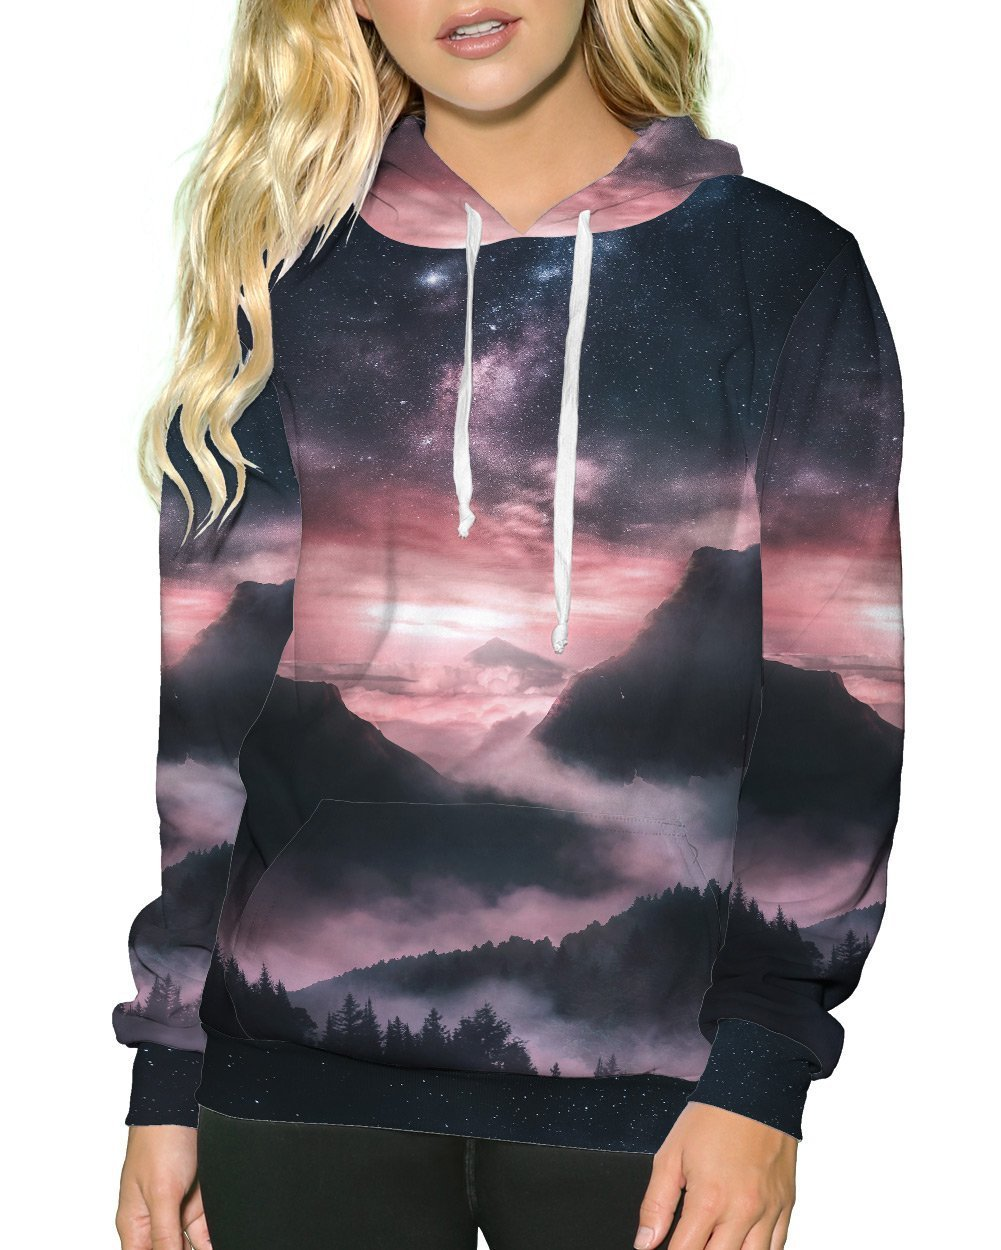 At Dusk Pullover Hoodie-Female-Front